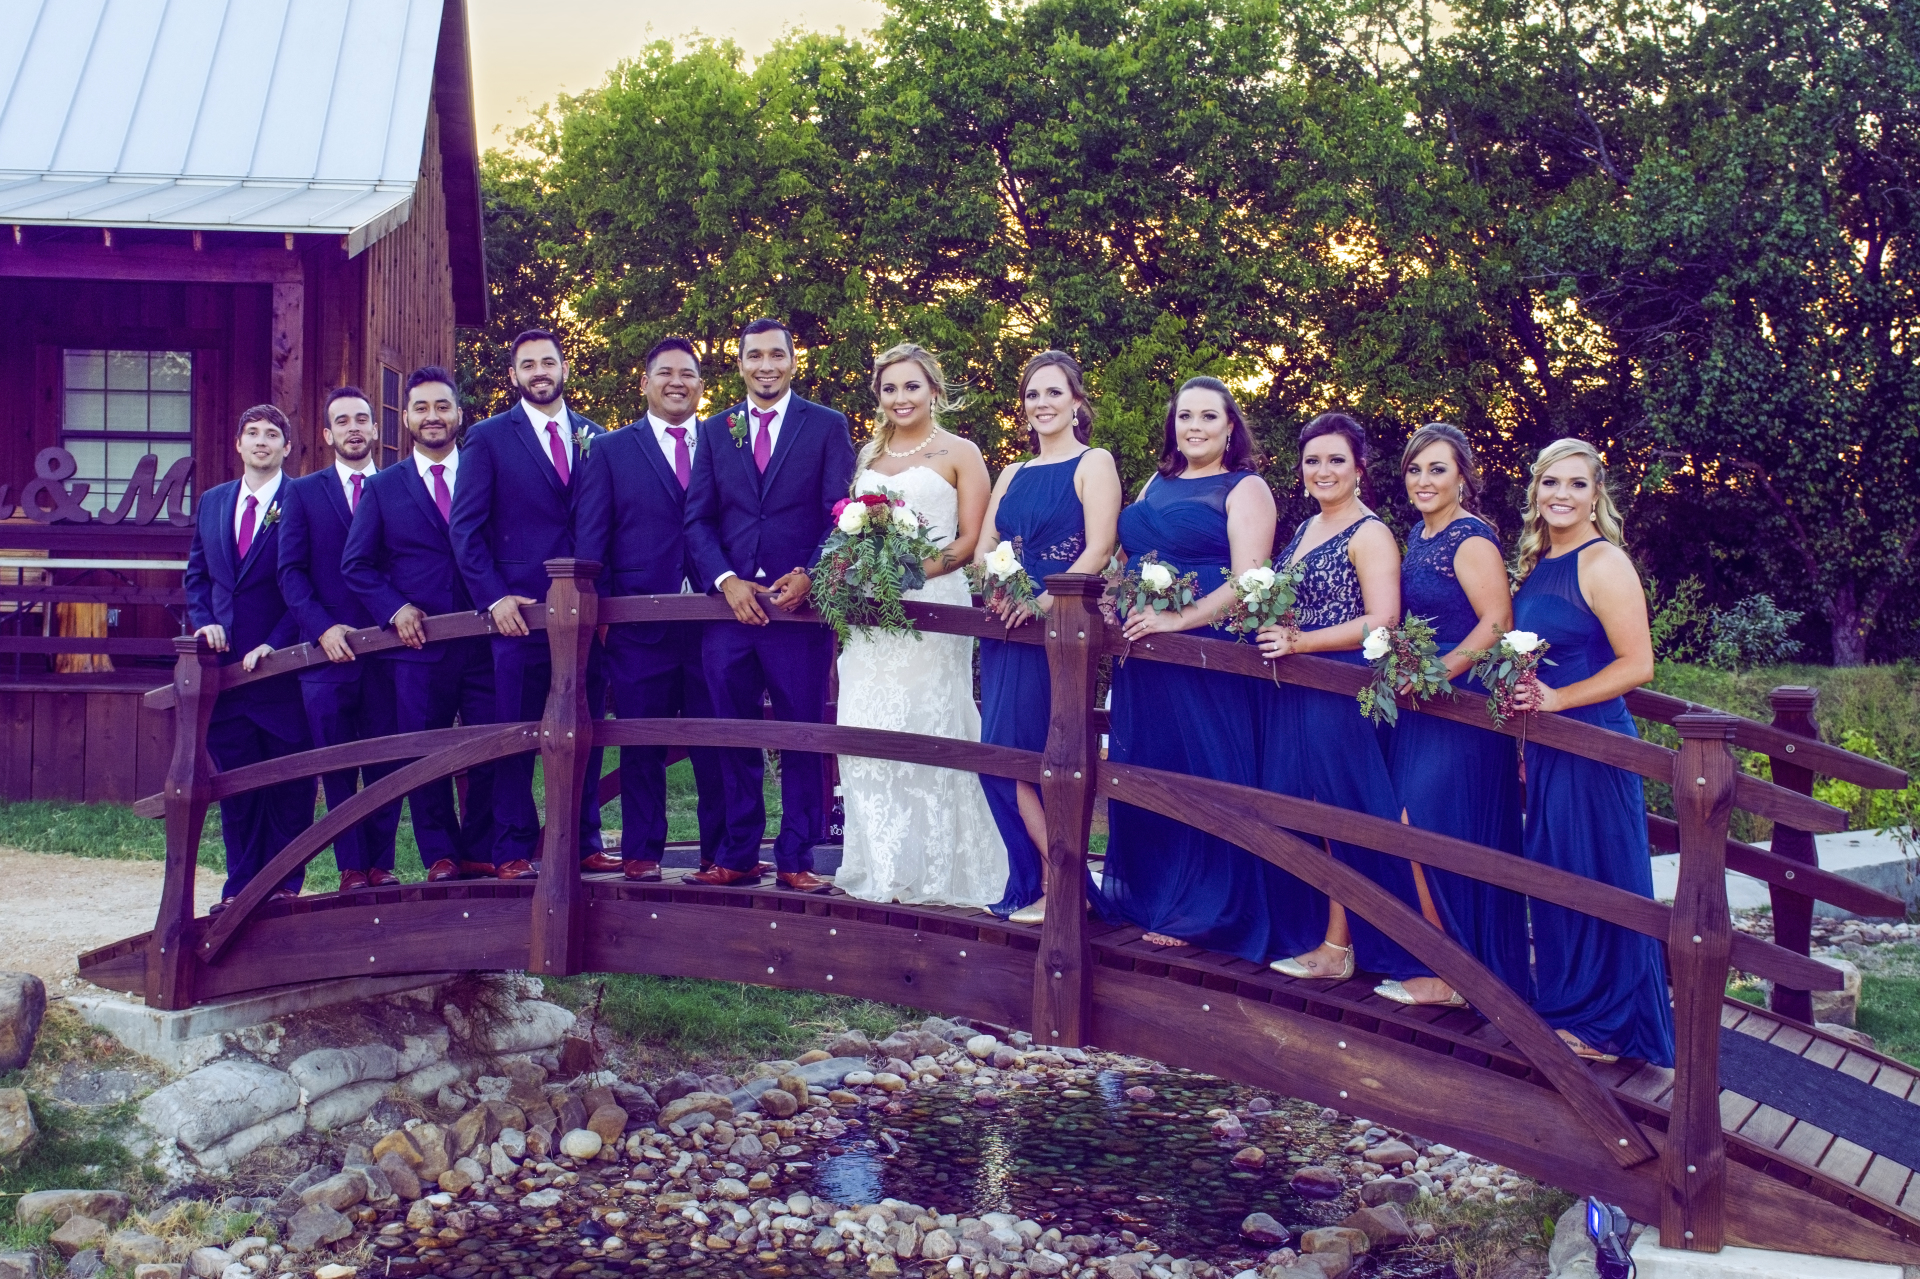 bridge cowboy west style farmer launch group wedding photo